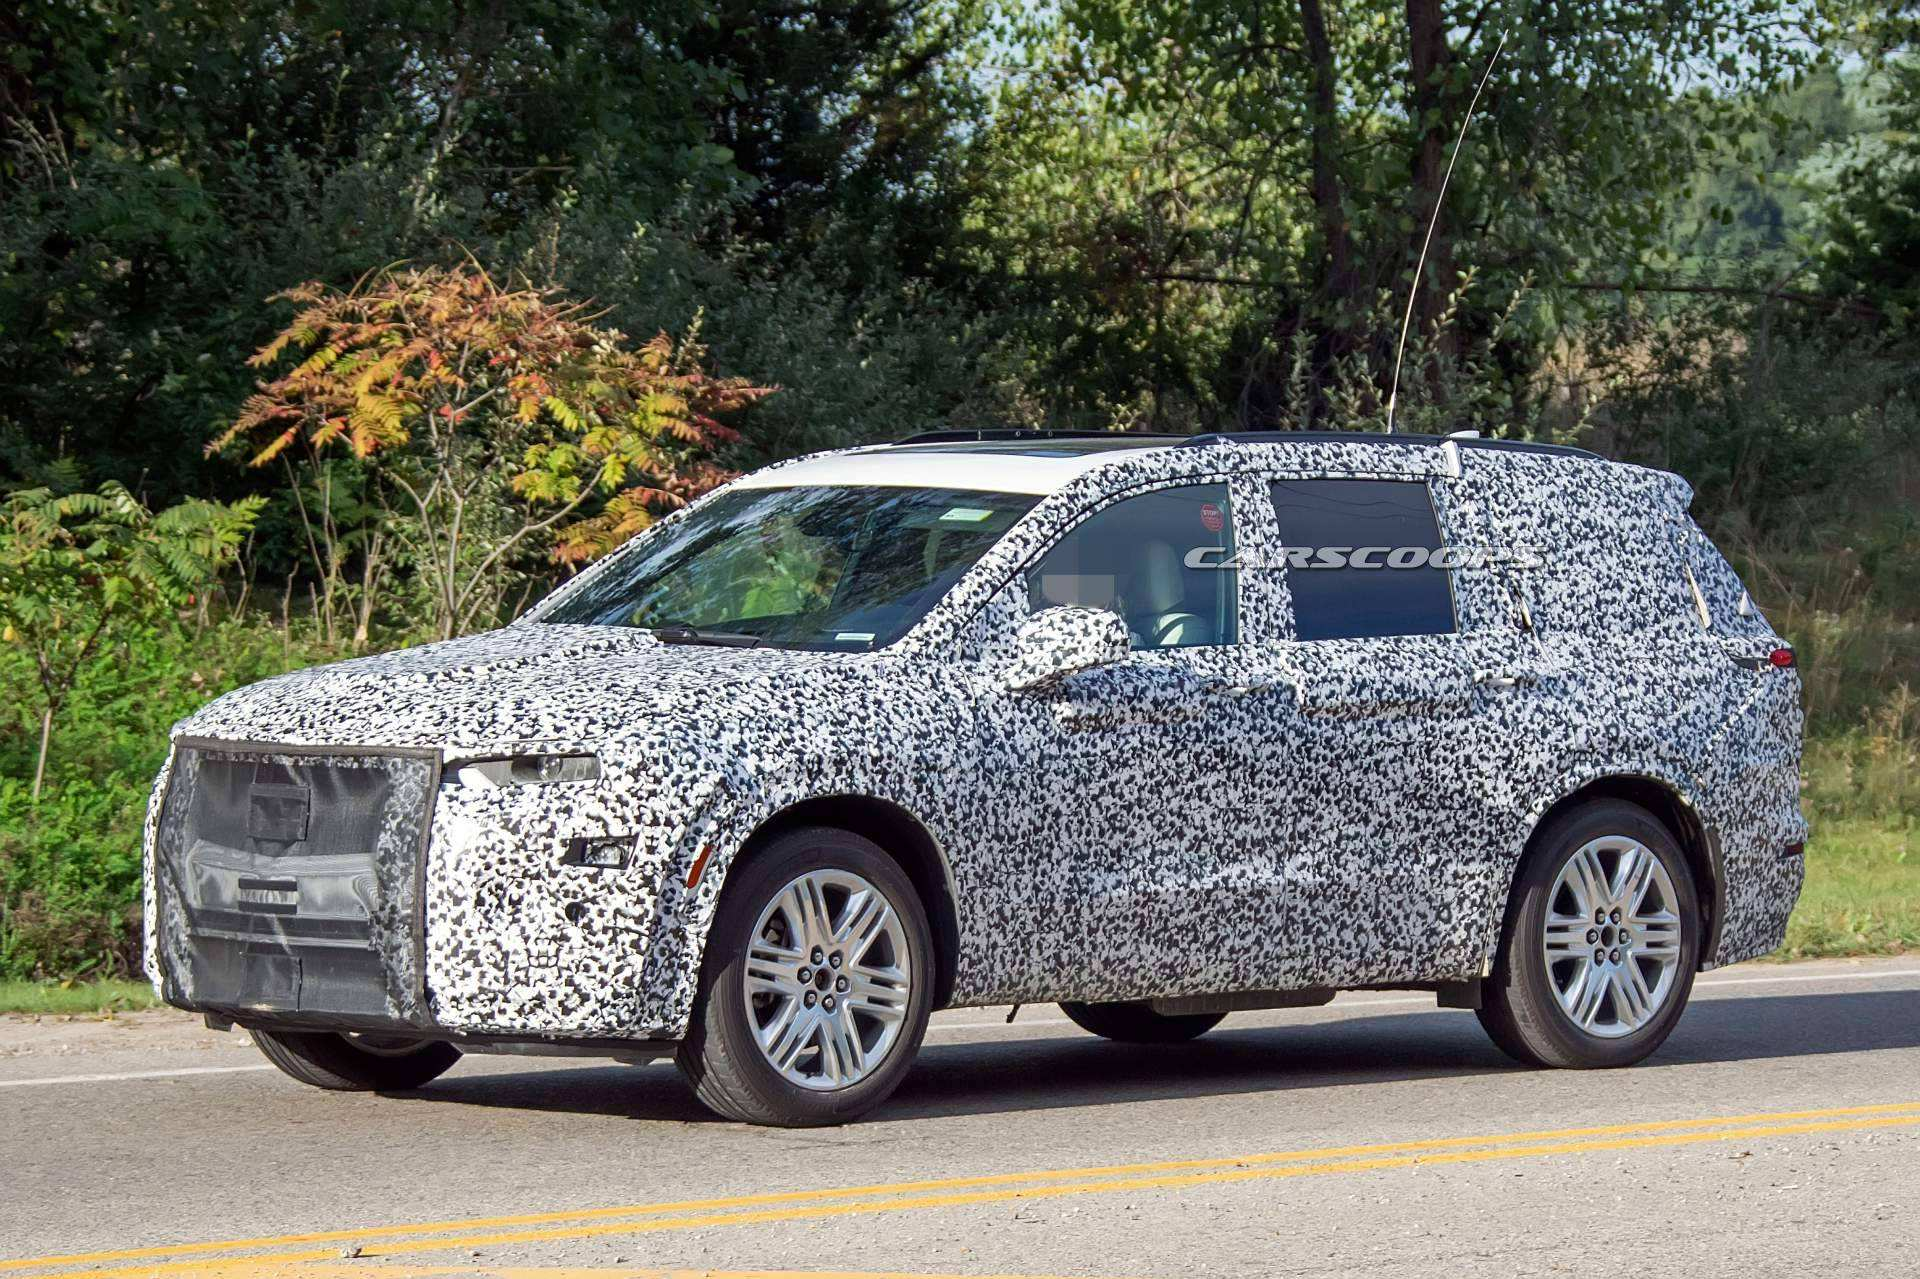 30 All New Cadillac Escalade New Body Style 2020 Performance And New Engine